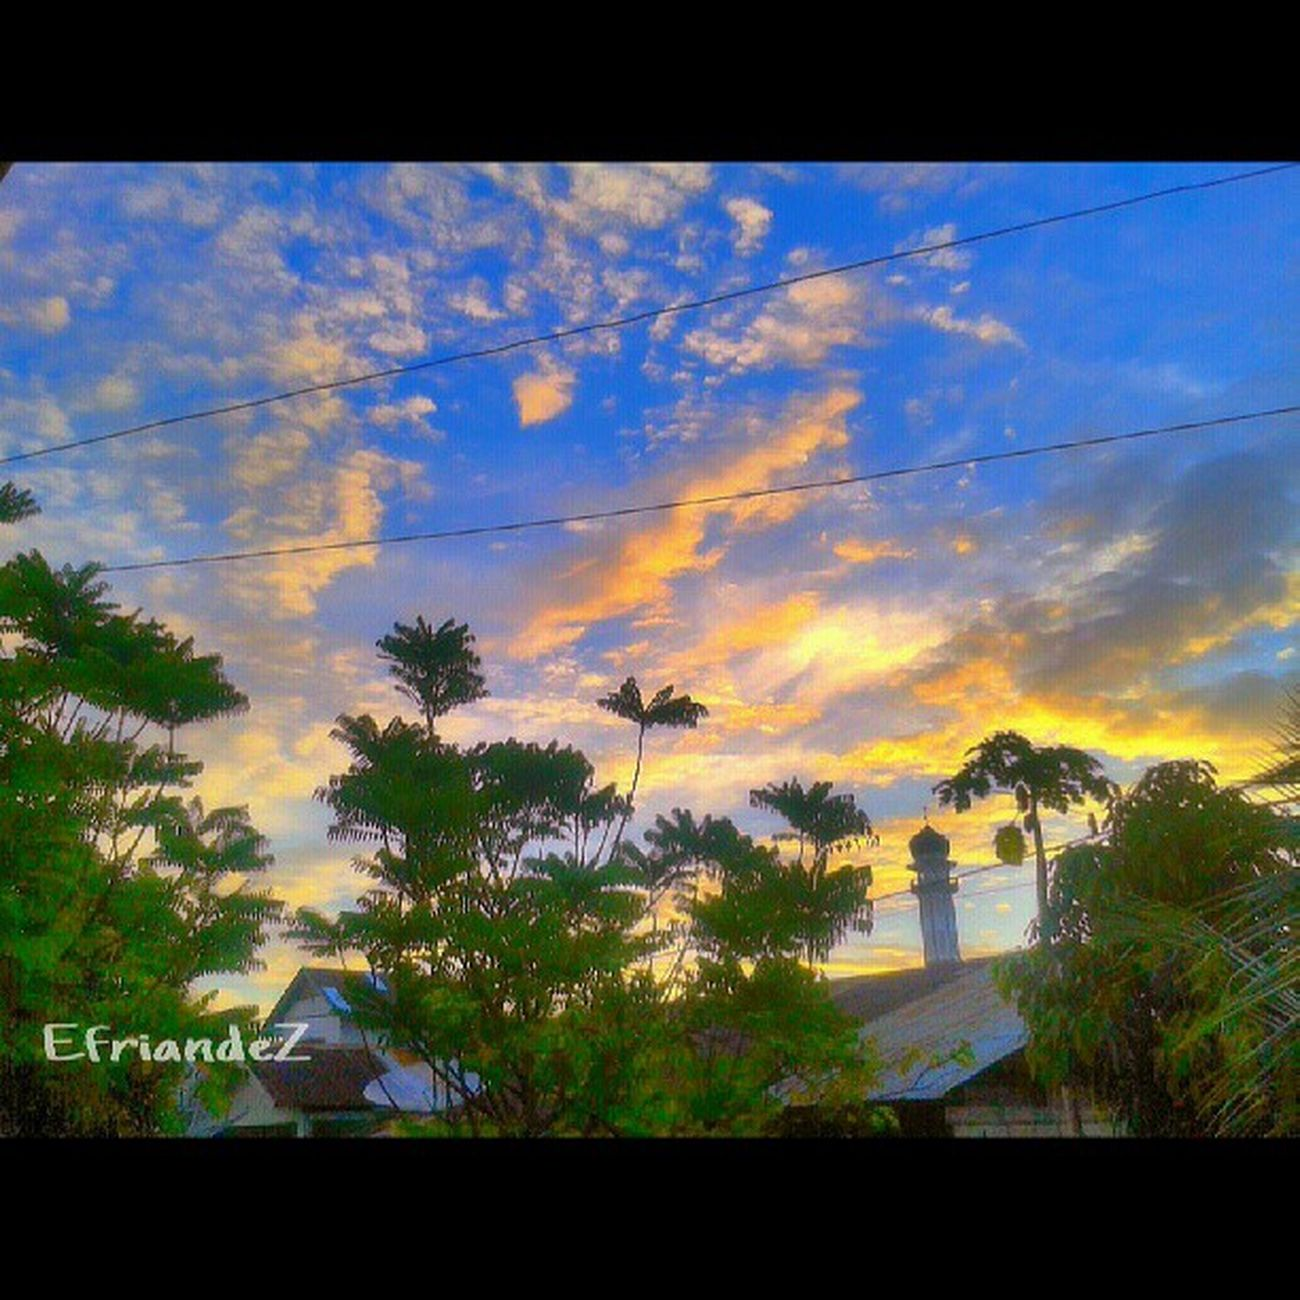 Sky show up -------------------------- Padepkankalisurut Picohtheday Instagram HDR_Indonesia gf_indonesia gang_family gf_dailystyle fotodroid